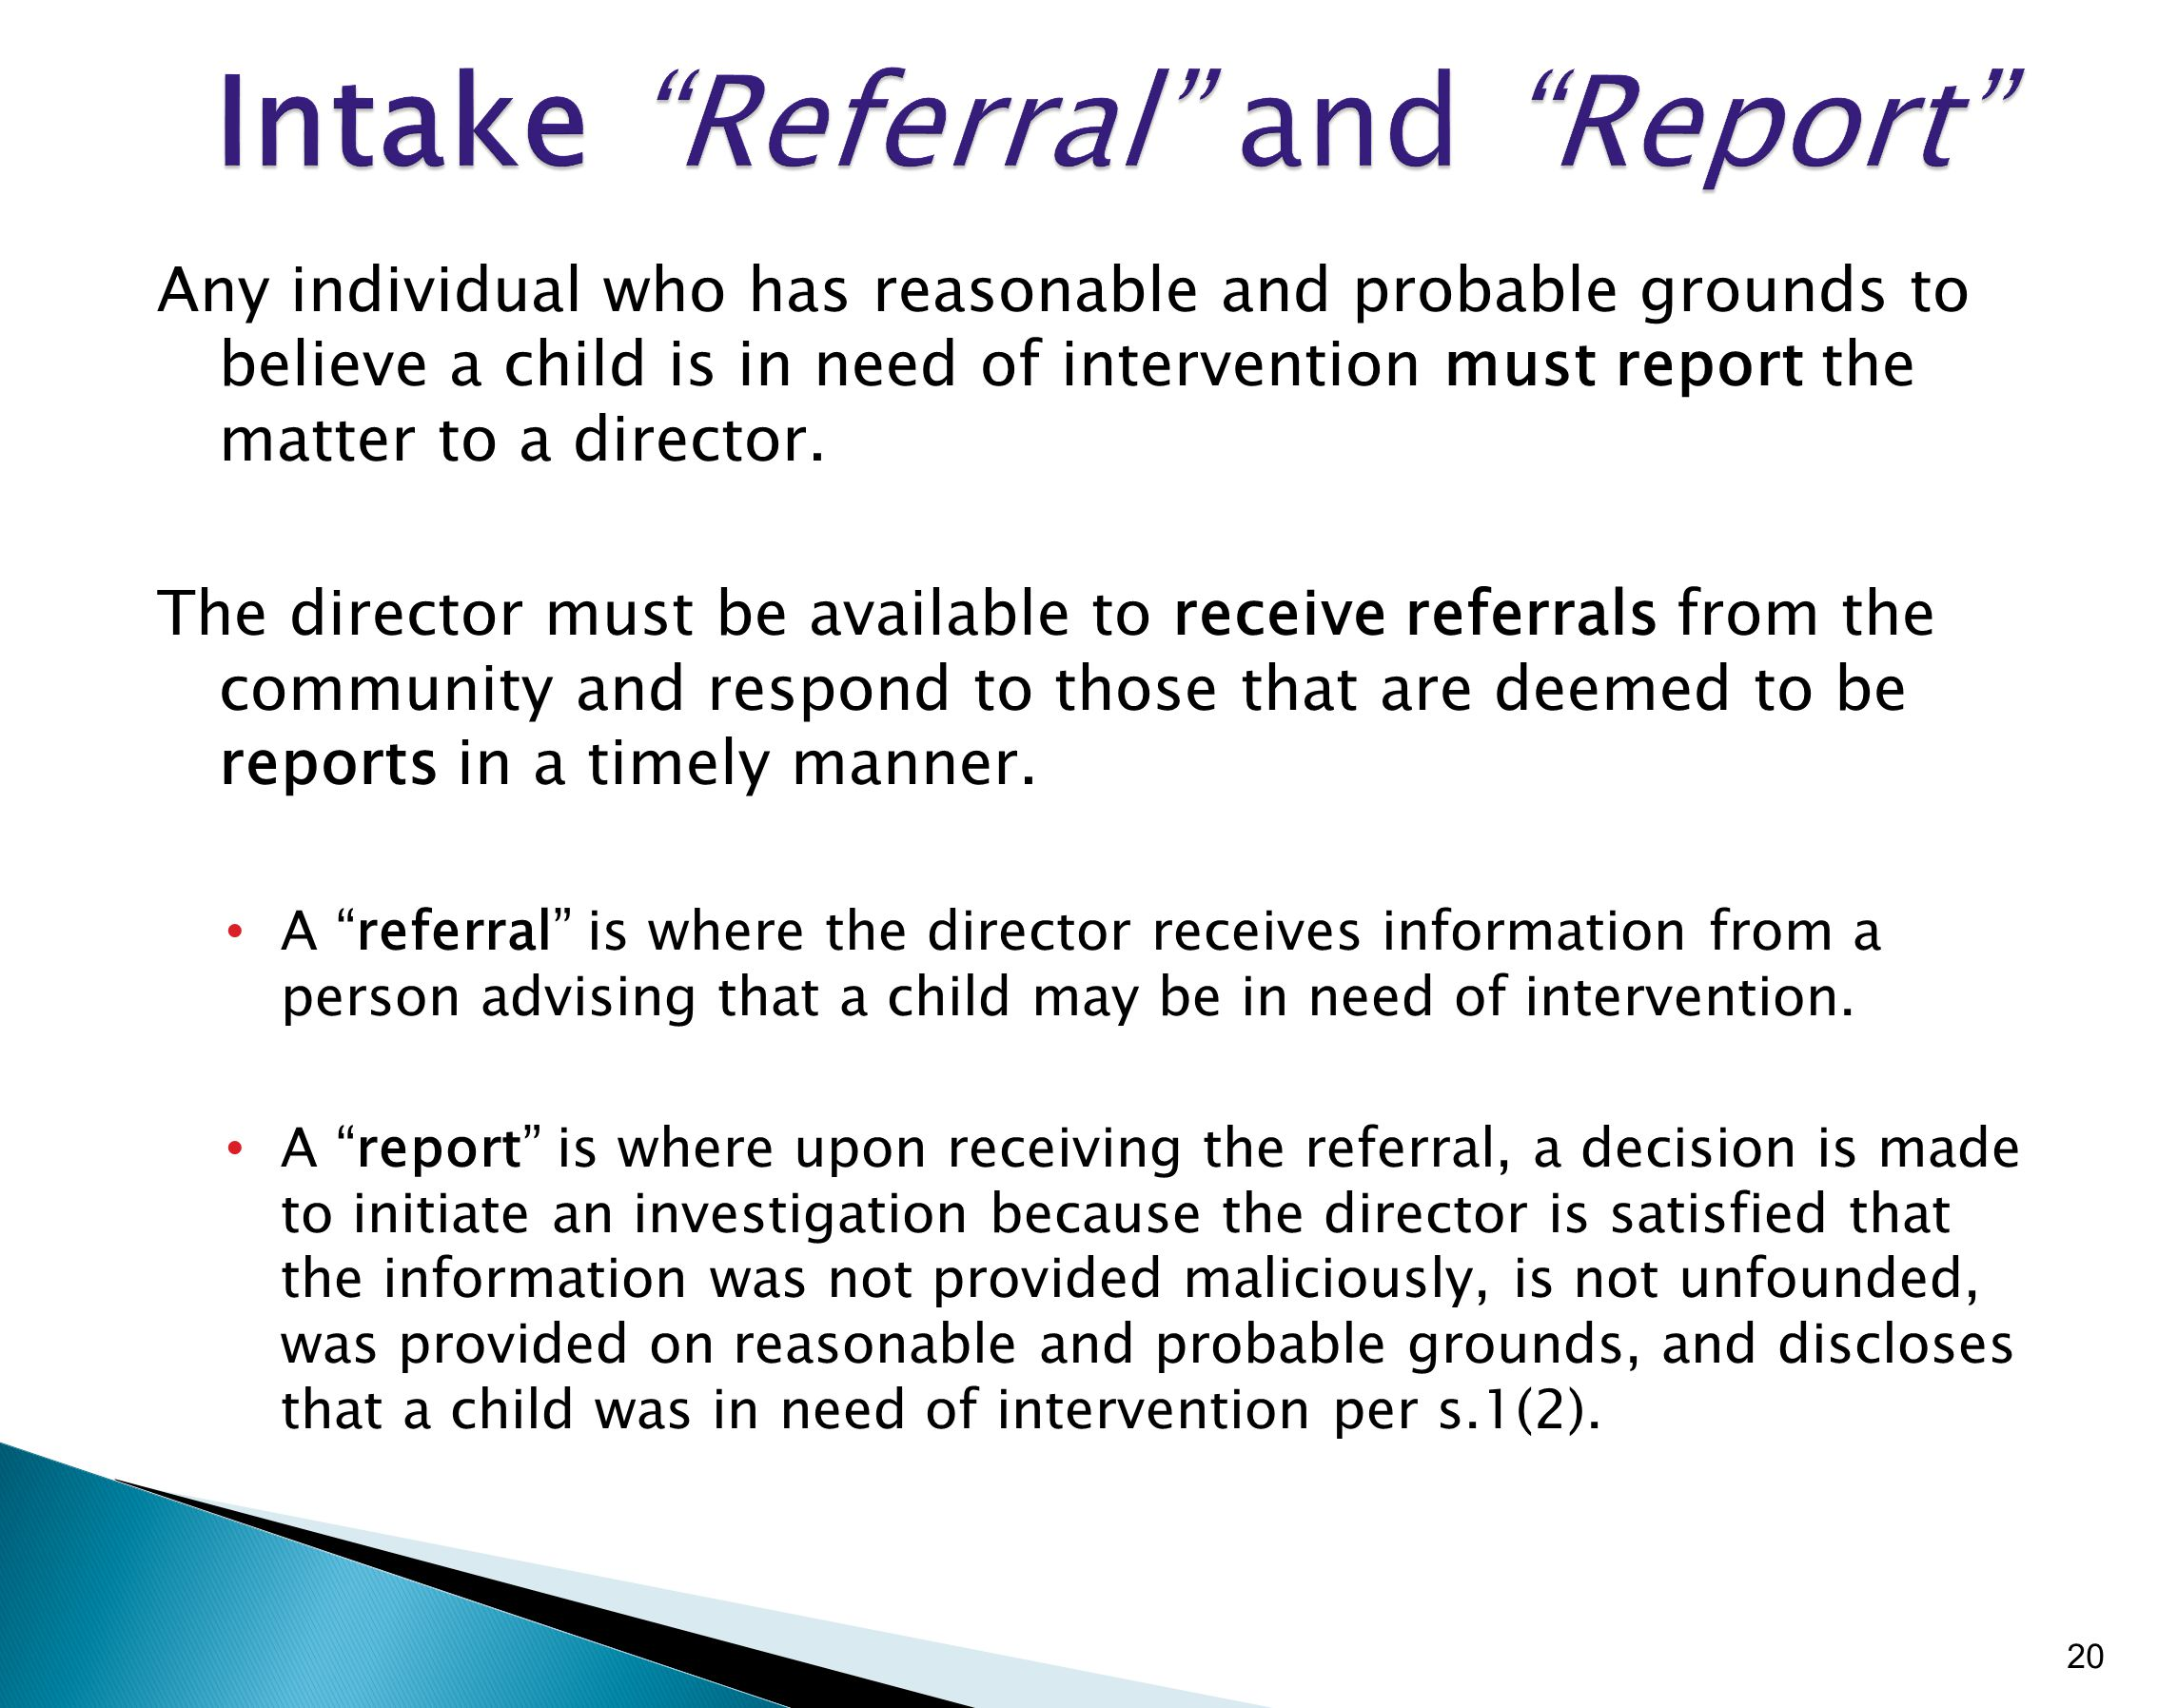 Any individual who has reasonable and probable grounds to believe a child is in need of intervention must report the matter to a director.